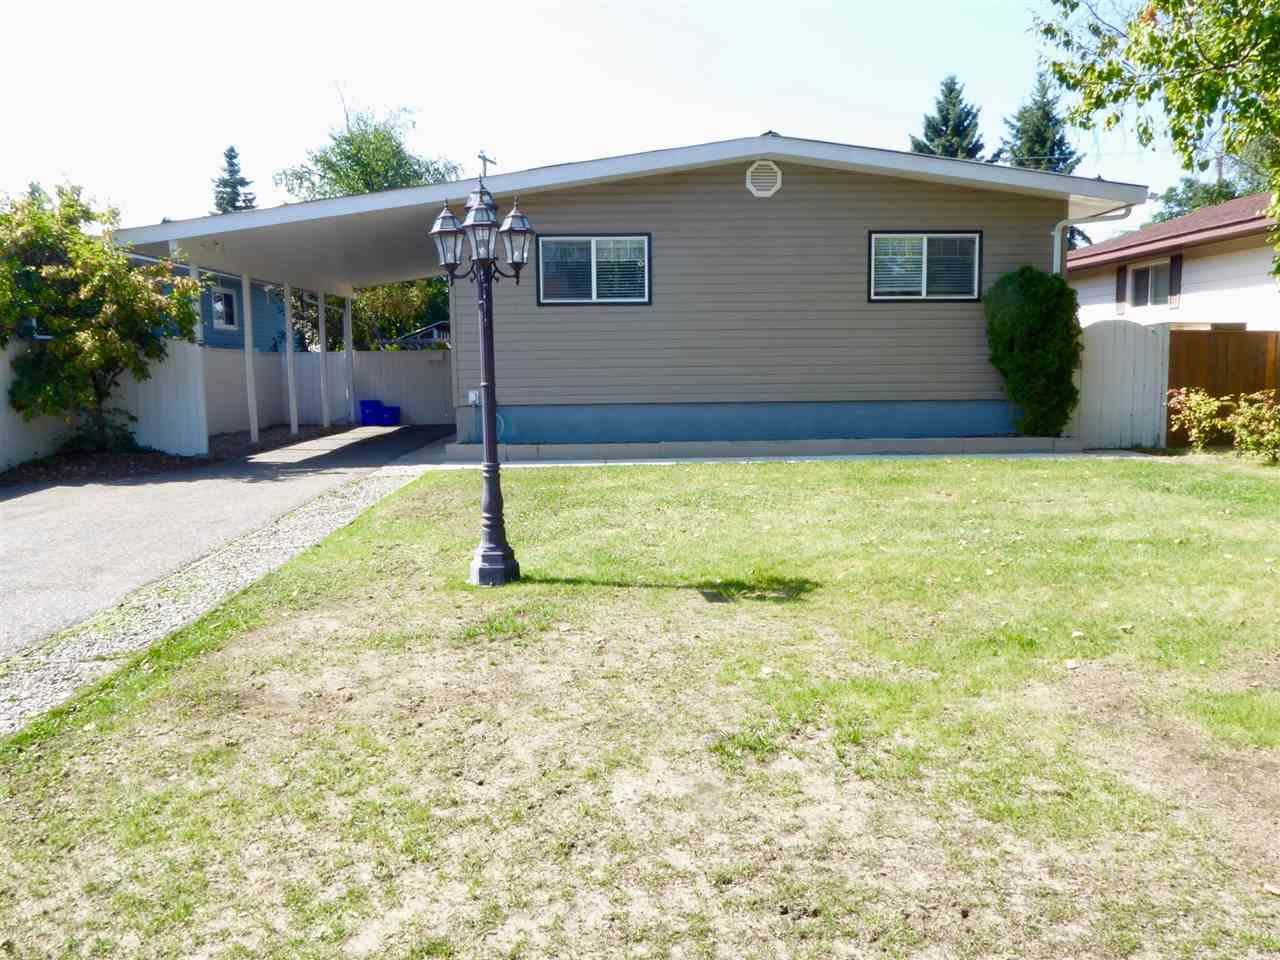 Main Photo: 259 S NICHOLSON Street in Prince George: Quinson House for sale (PG City West (Zone 71))  : MLS®# R2196334